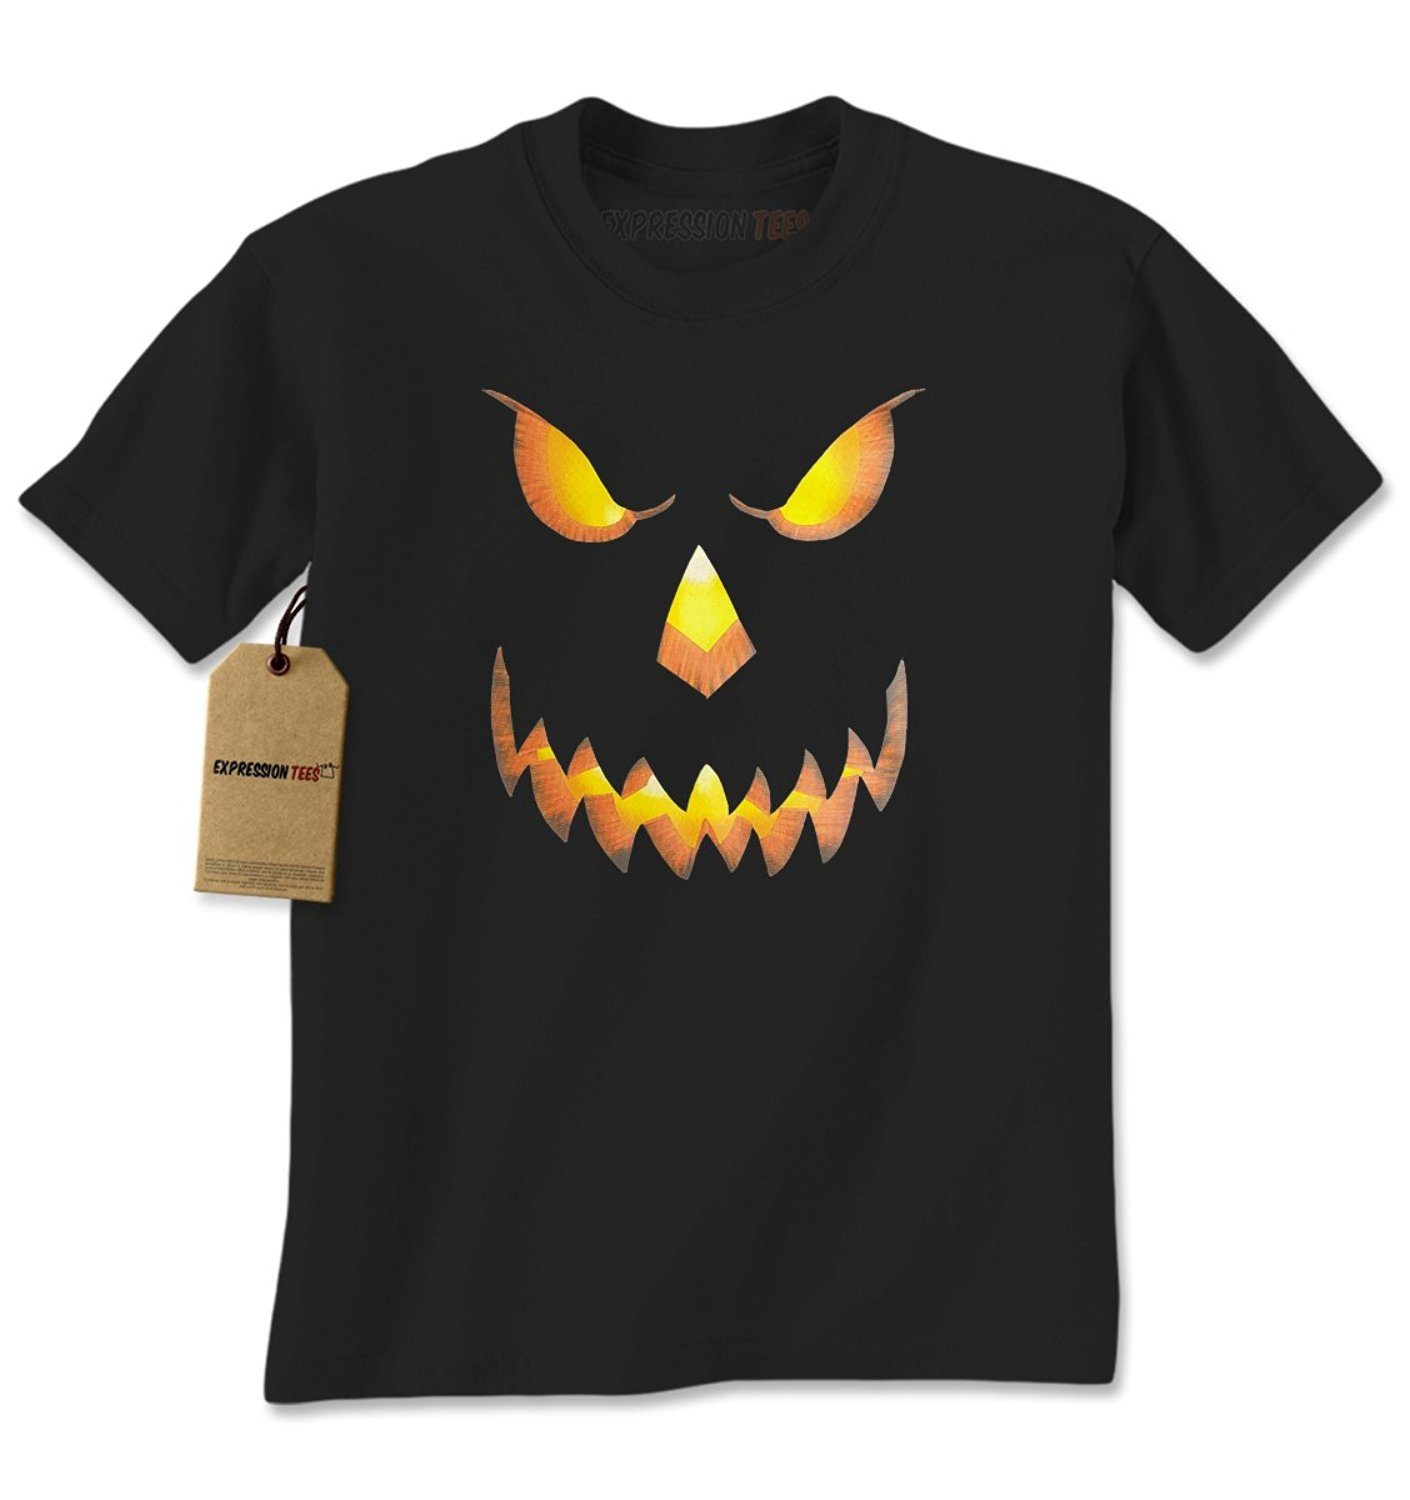 Expression Tees Jack-O-Lantern Glowing Pumpkin Face Mens